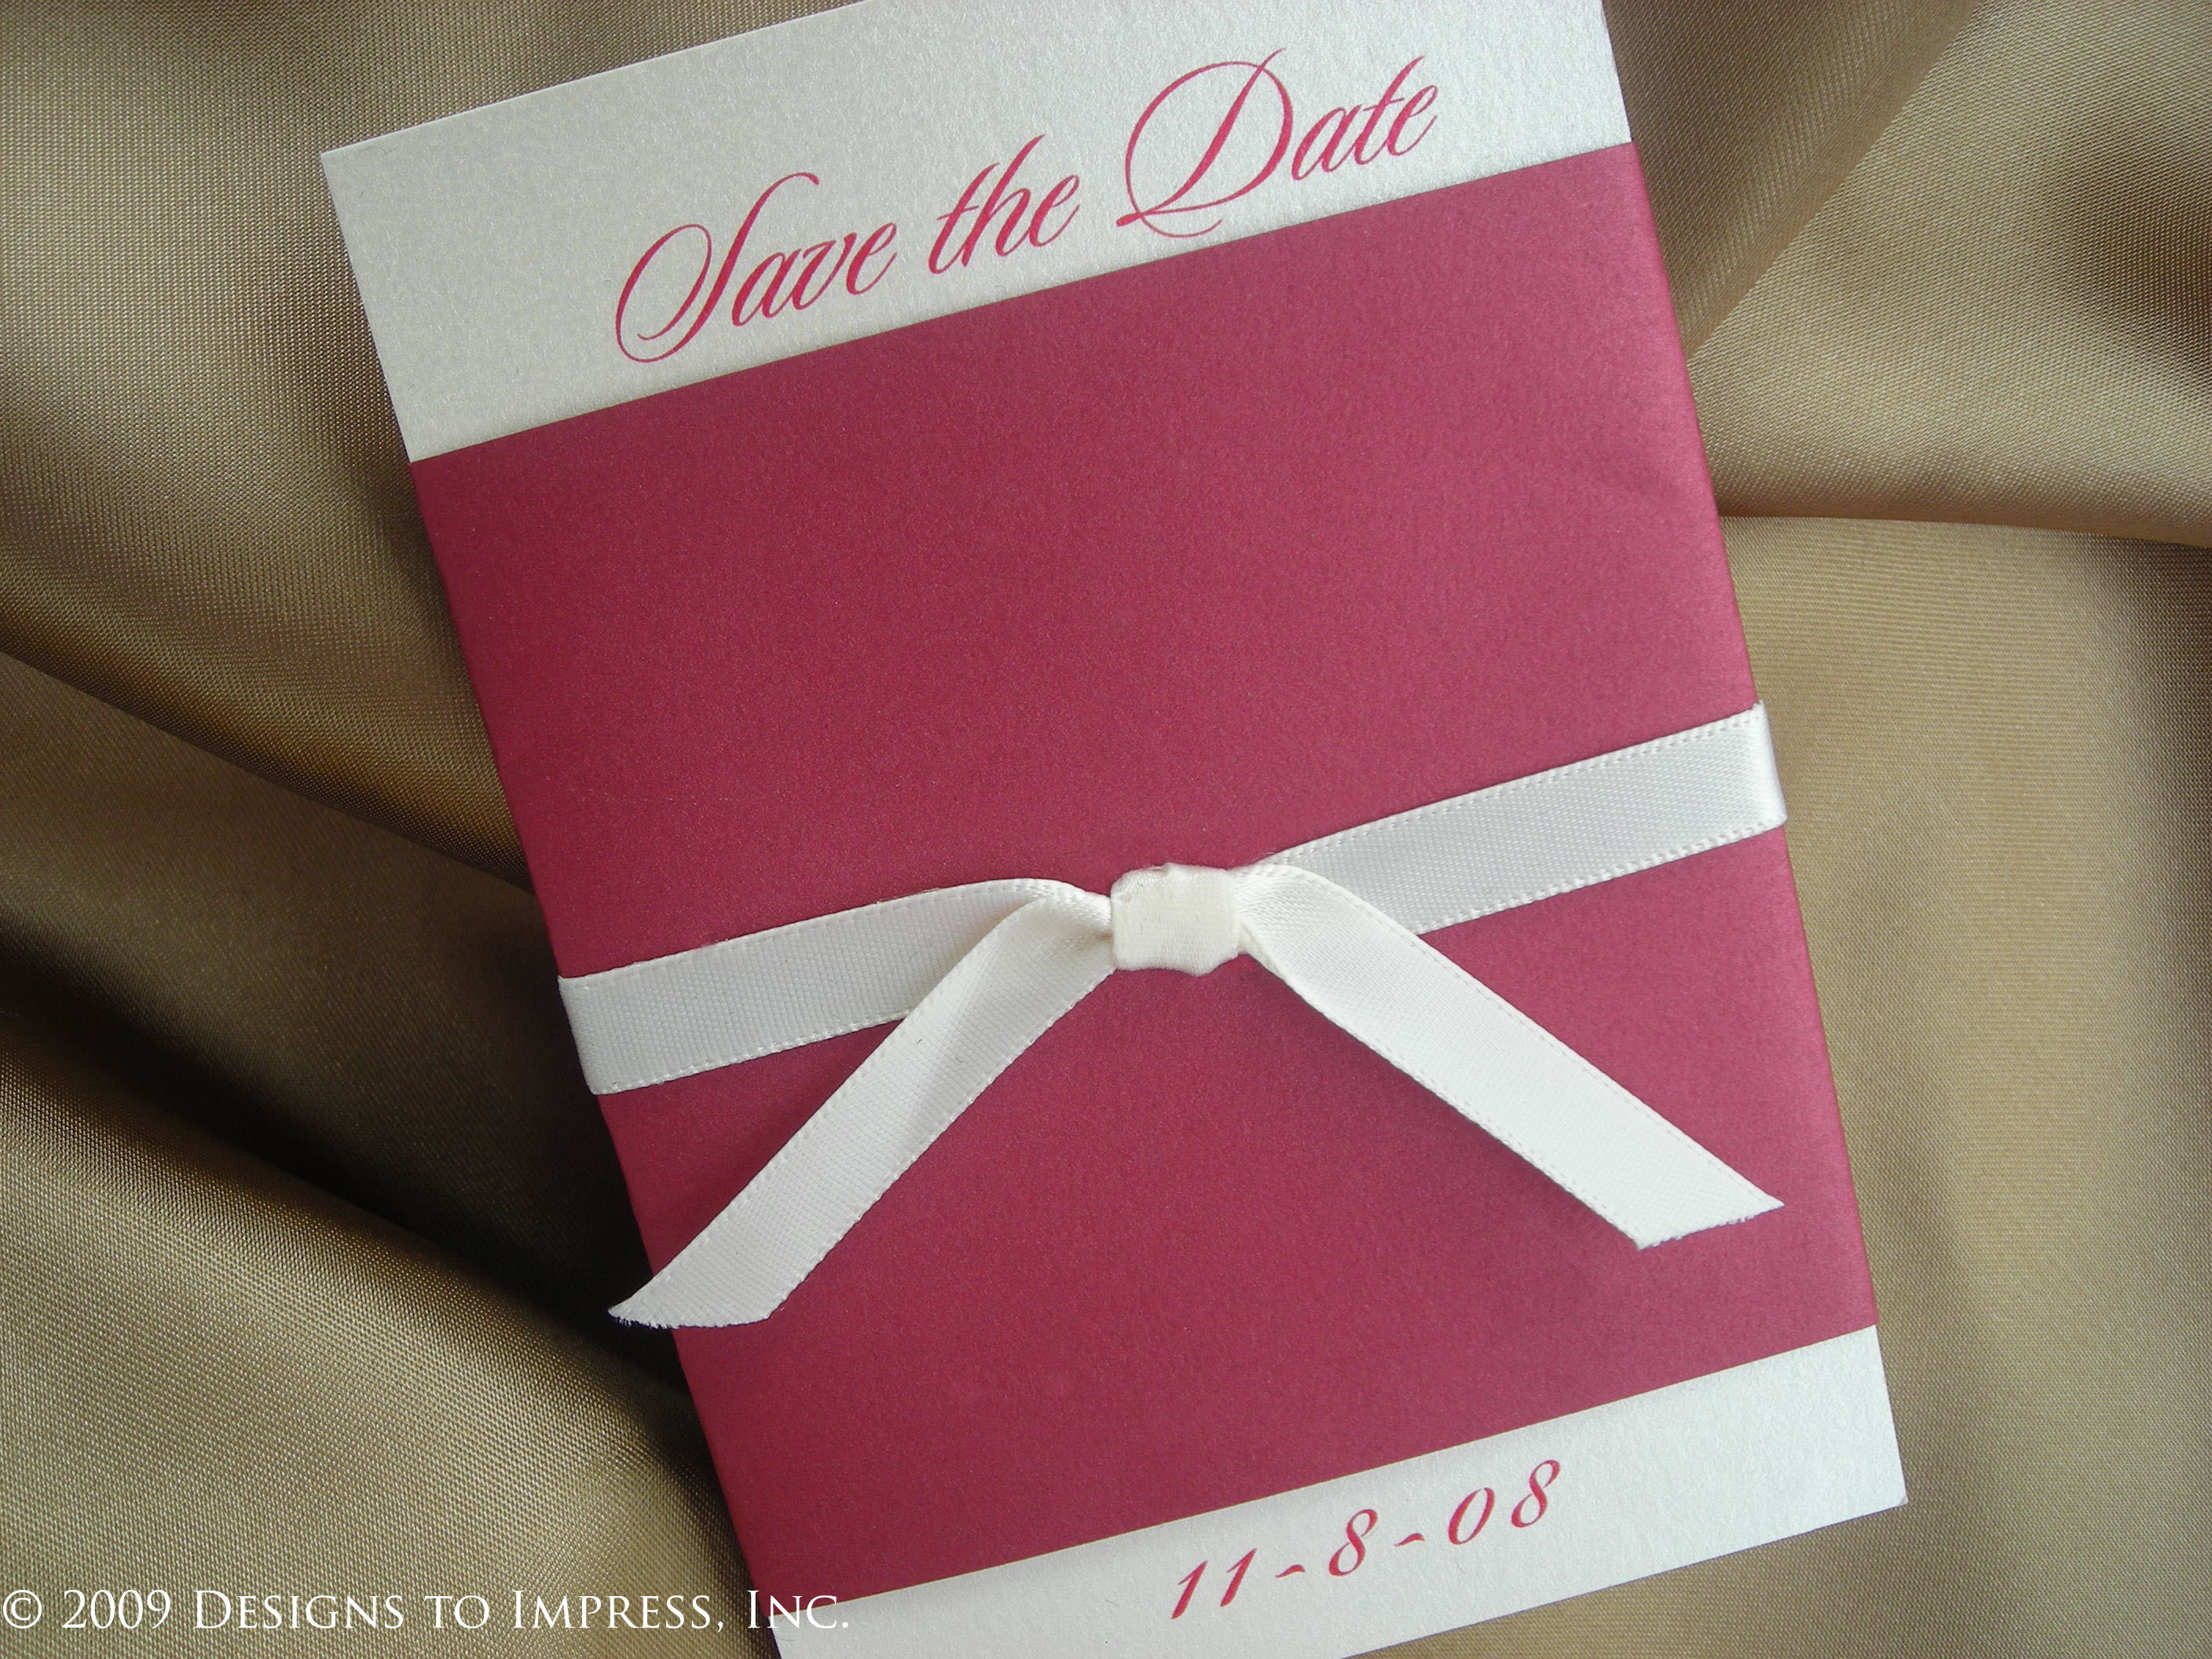 Classic, Save-the-Dates, Wedding, Unique, Elegant, inc, Shimmer, Designs to impress